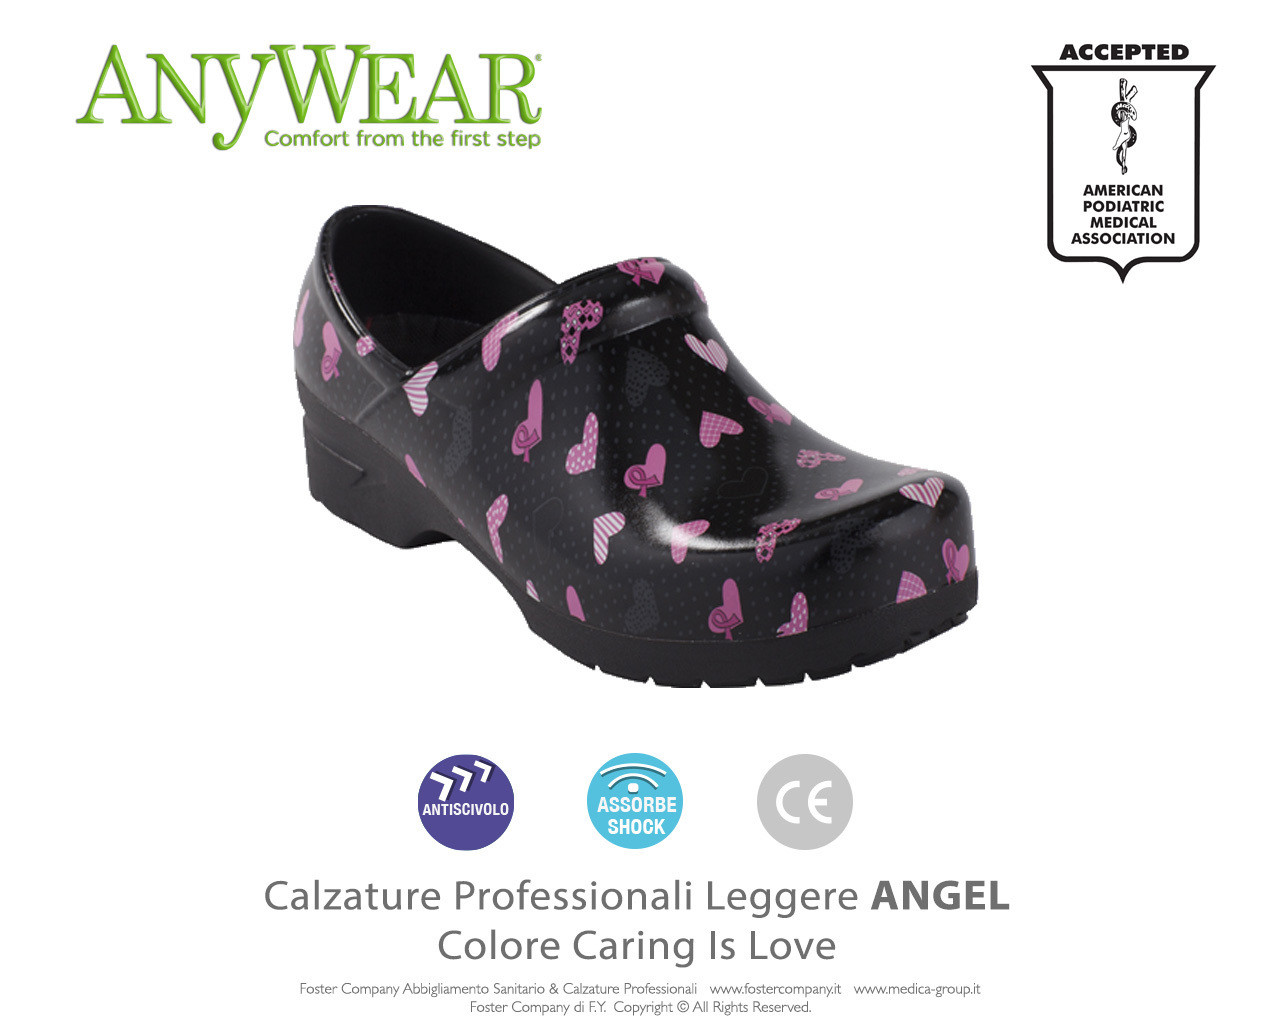 Calzature Professionali Anywear ANGEL Colore Caring is Love